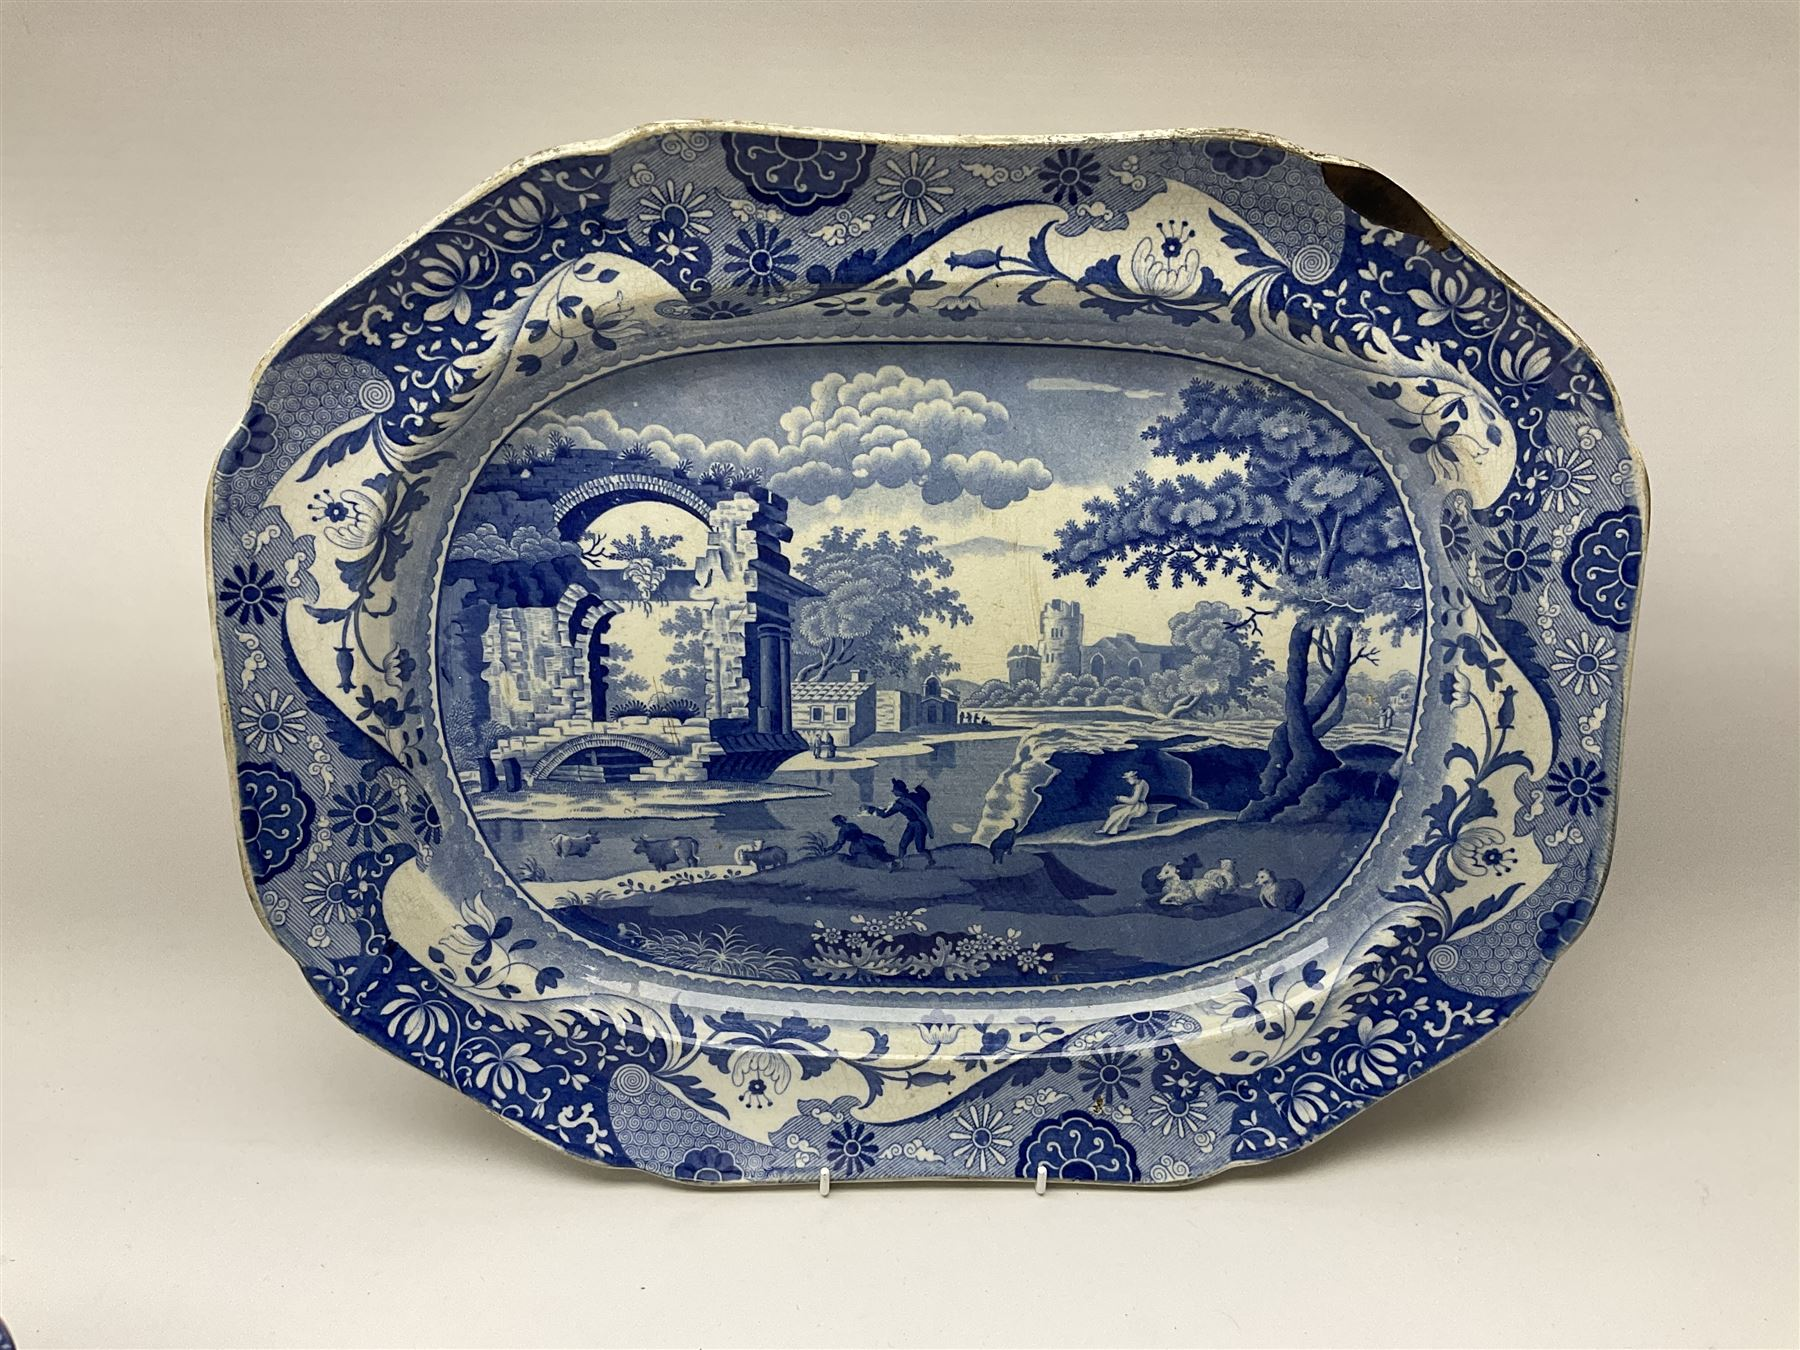 A group of 19th century Spode blue and white transfer printed pottery - Image 4 of 5